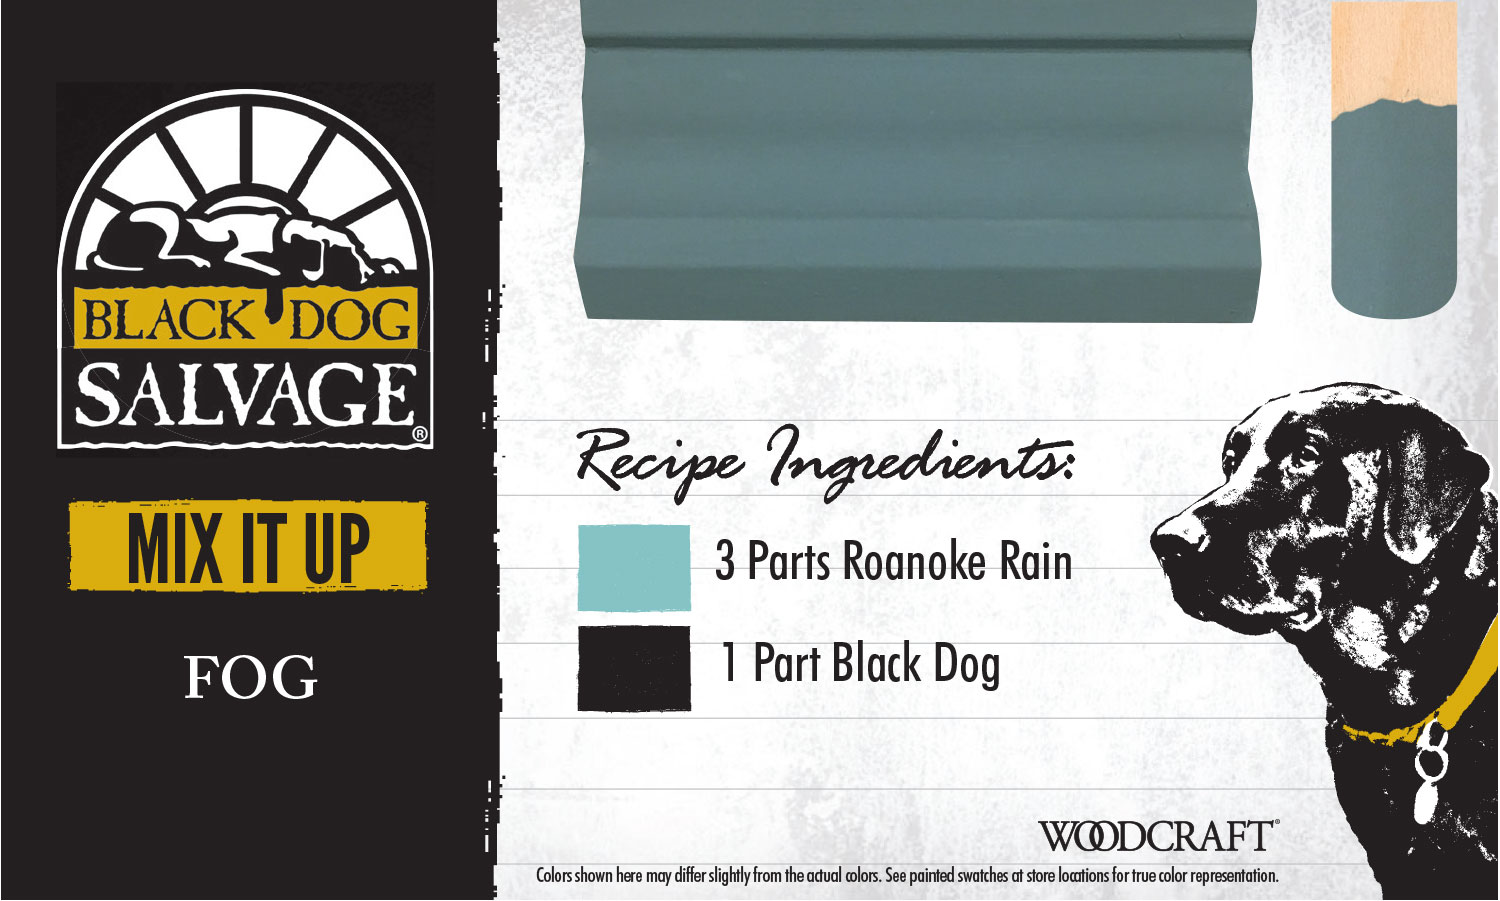 """""""Fog"""" is made from3 Parts """"Roanoke Rain"""" and 1 Part """"Black Dog"""""""